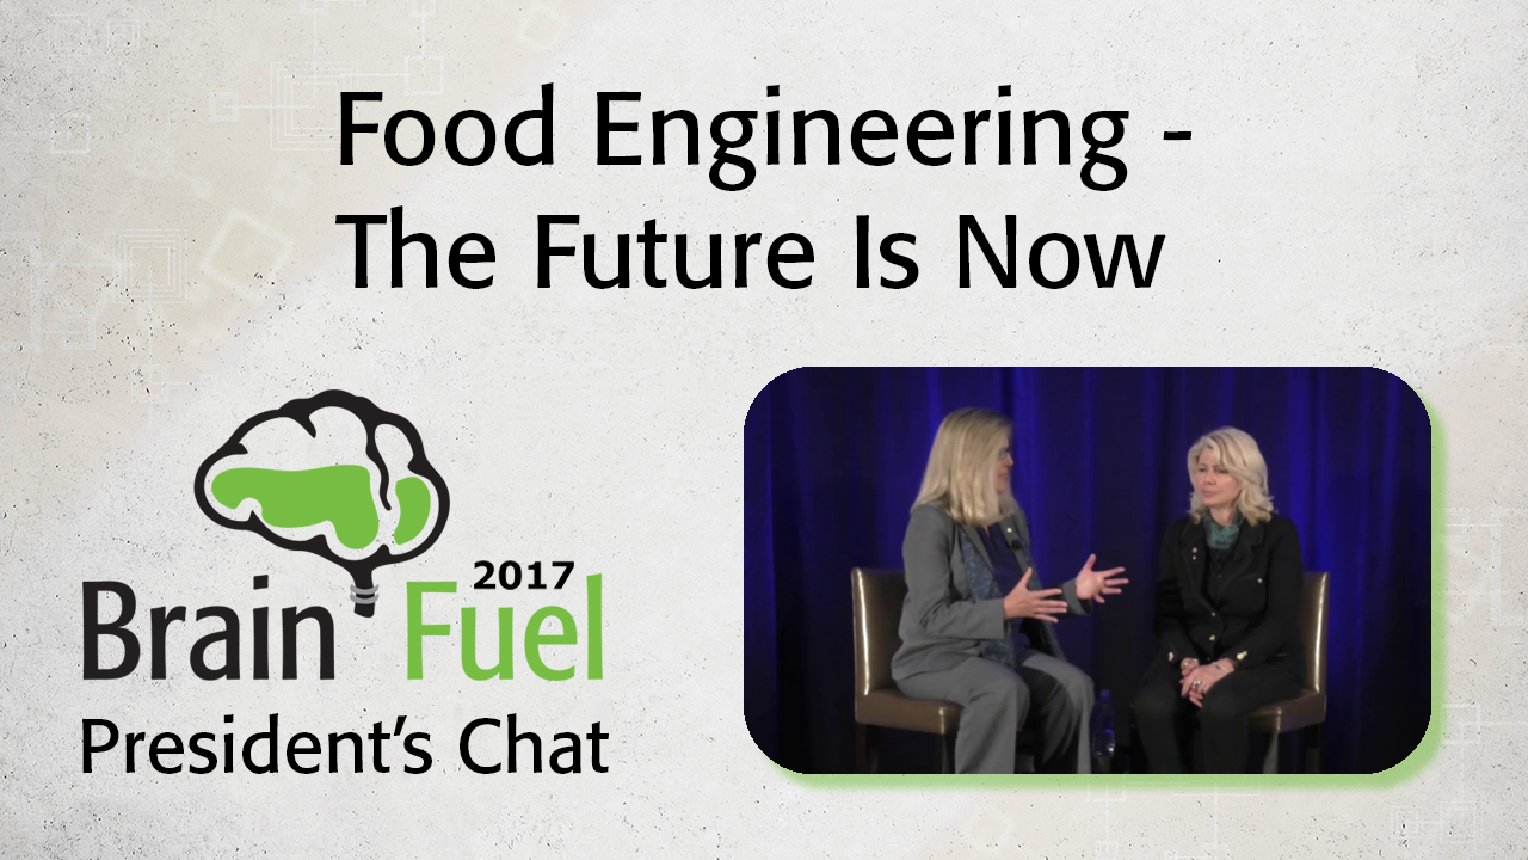 Food Engineering - The Future is Now: 2017 Brain Fuel President's Chat